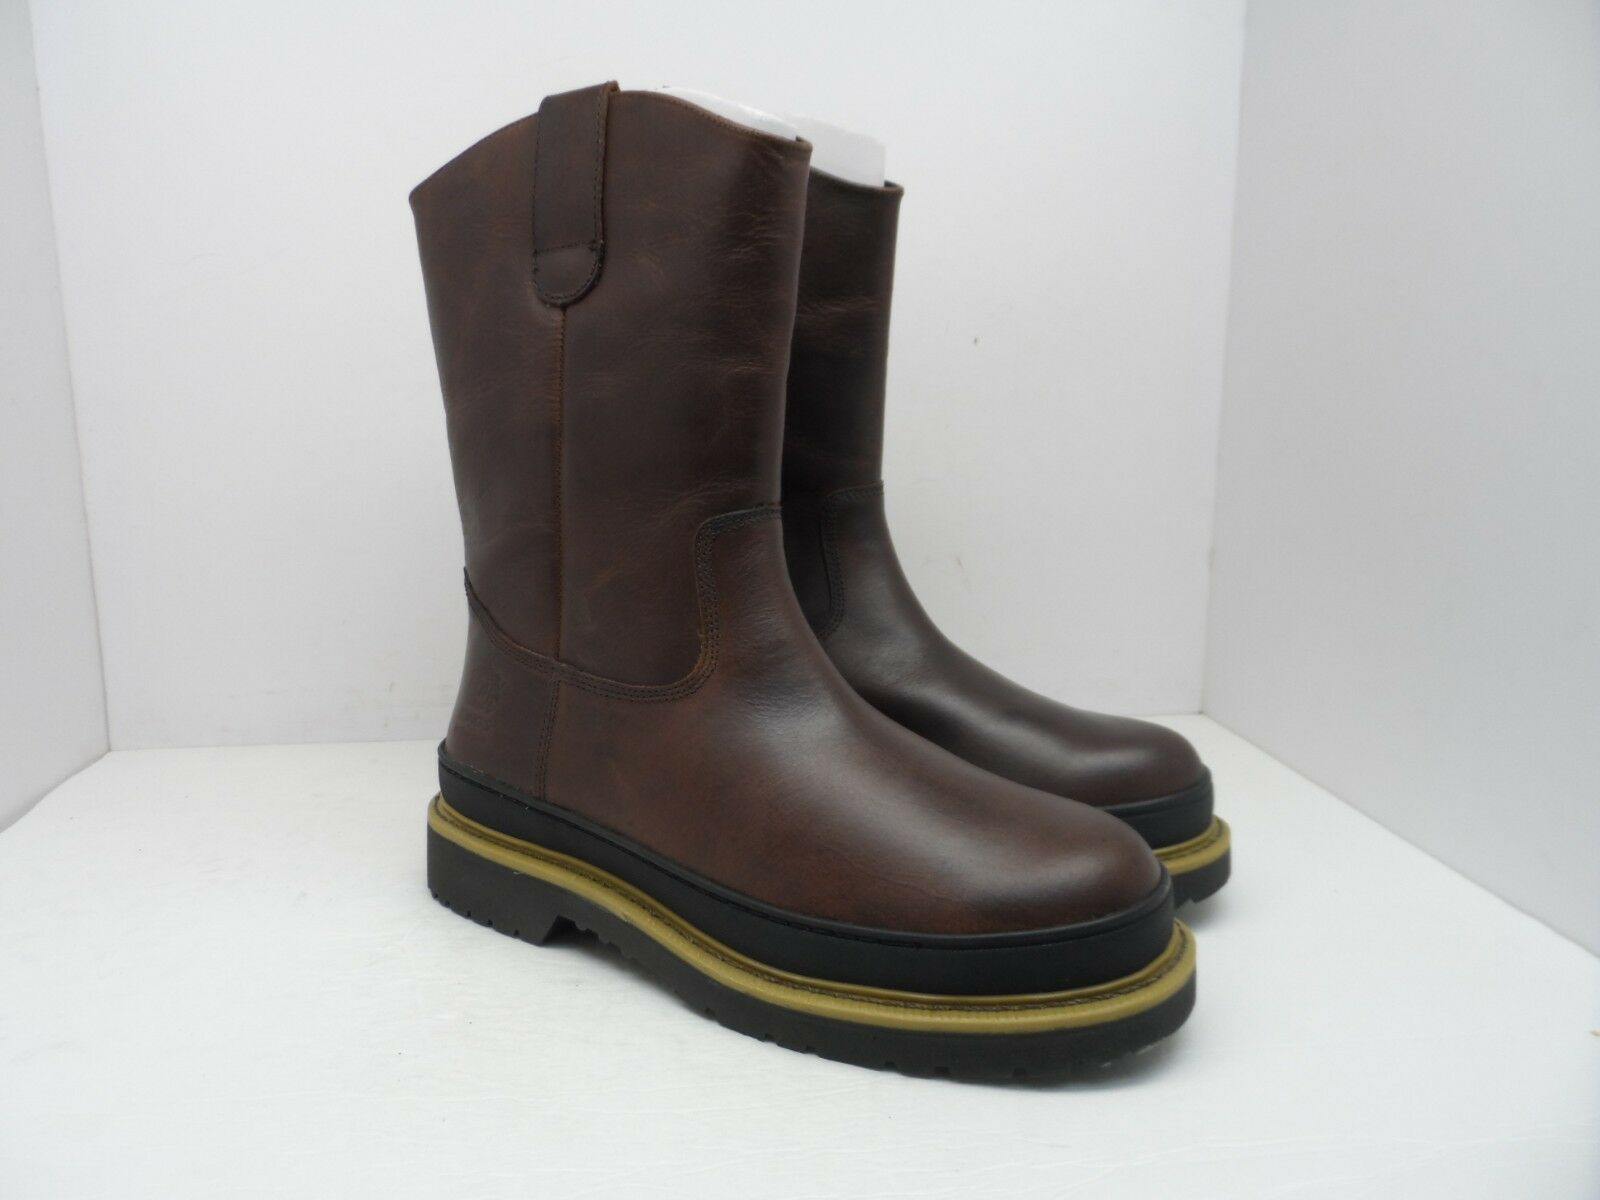 King's King's King's by Honeywell Uomo Welted Rigger KWRG01 Pull On Leather Steel Toe avvio 11M 78dc2e